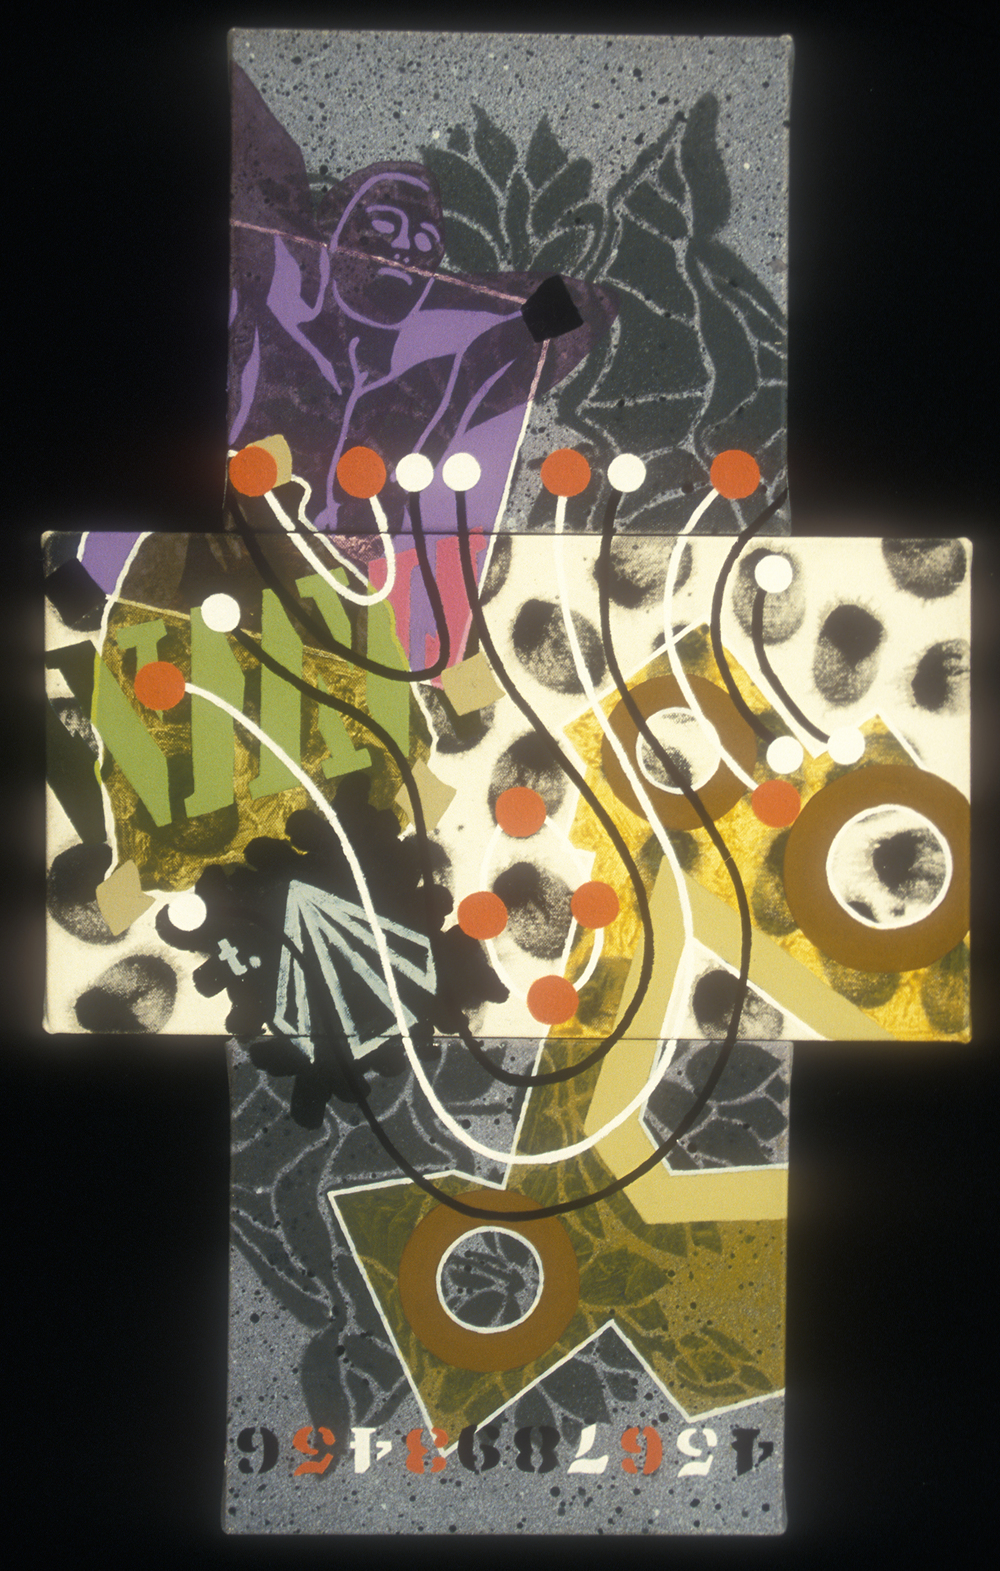 Triptych 20  , 2002, oil and wax on canvas, 40 x 24 in.